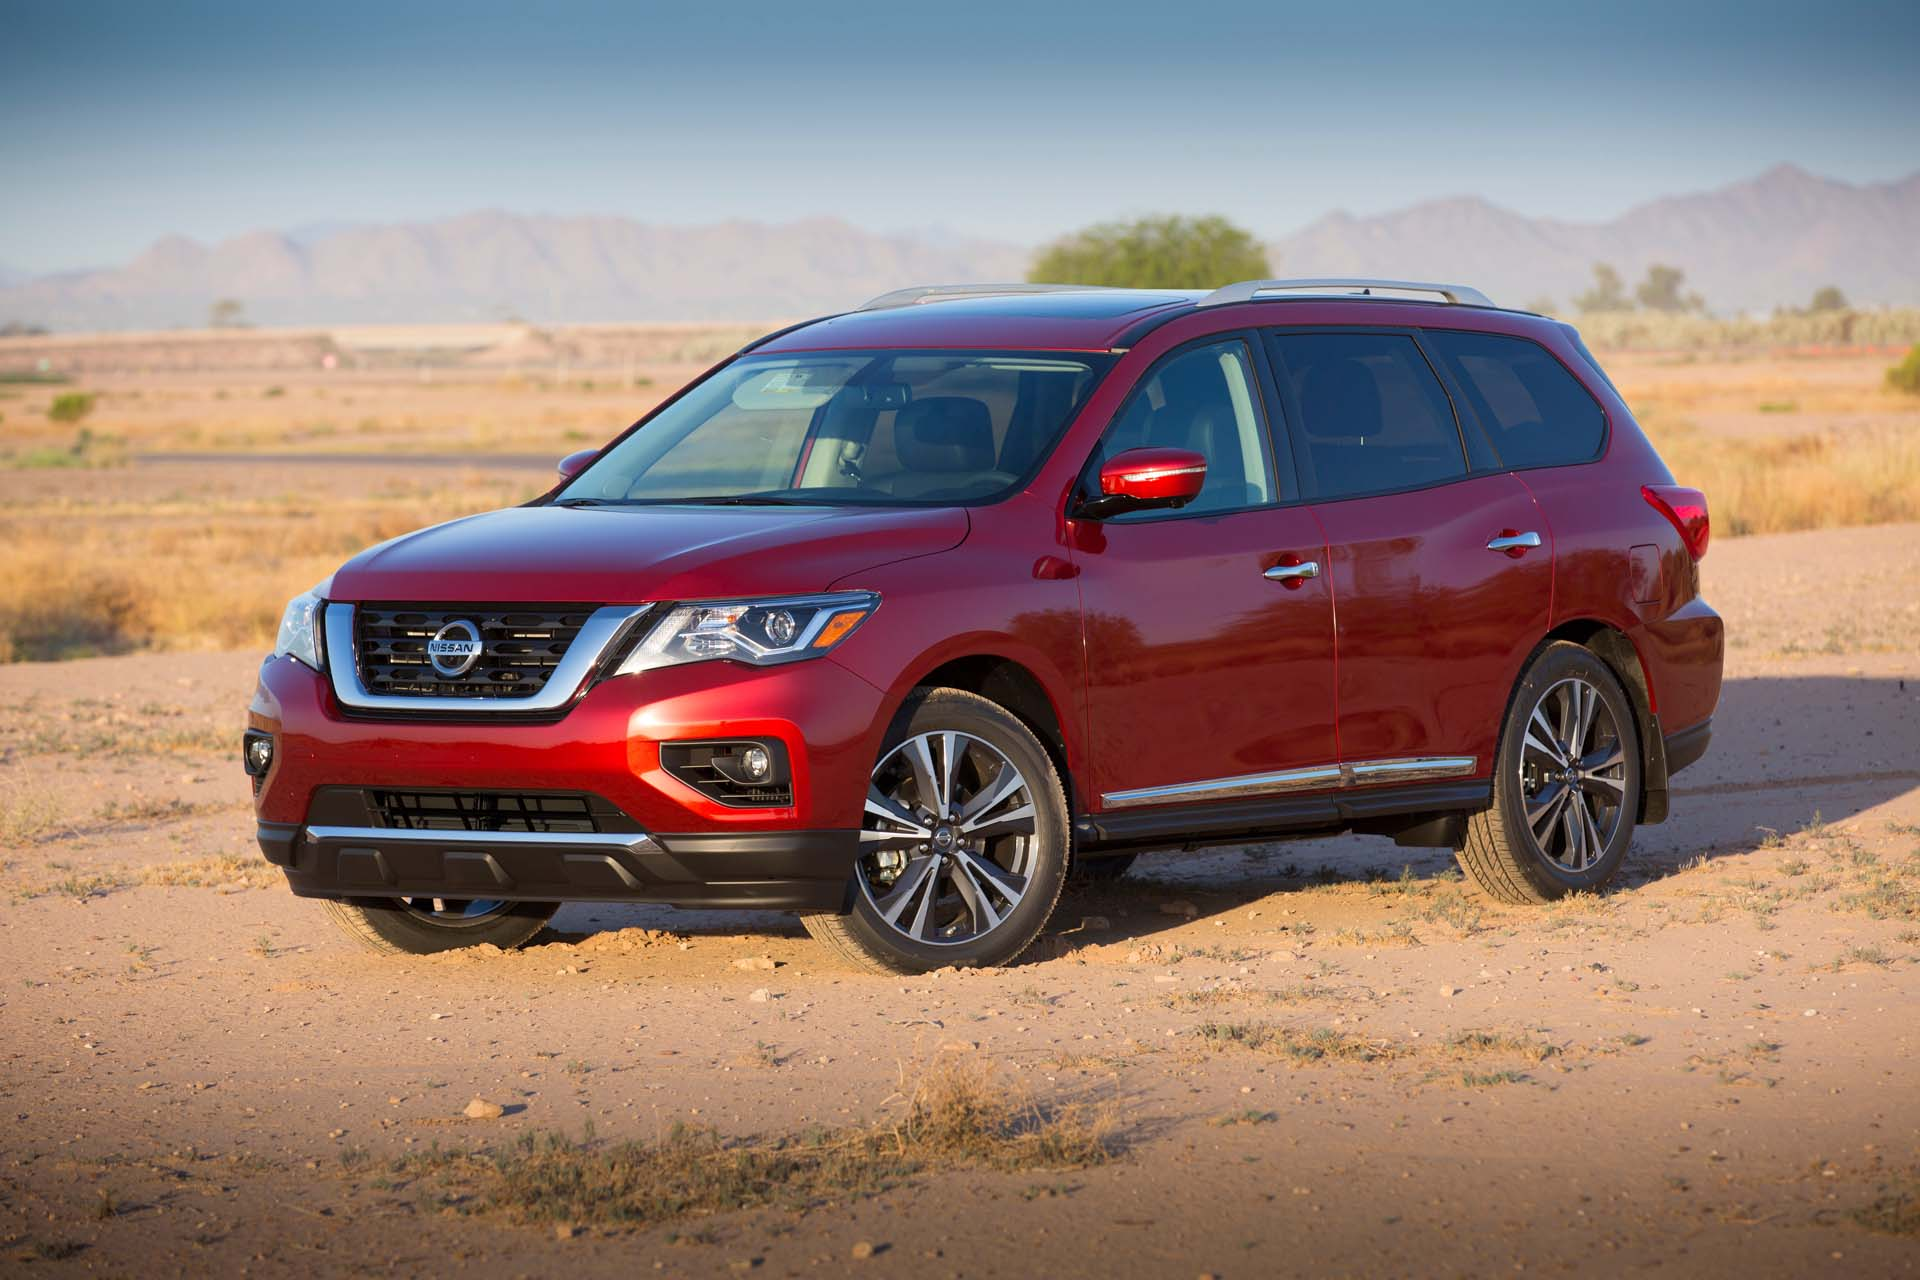 2017 Nissan Pathfinder Towing Capacity >> 2017 Nissan Pathfinder Review Ratings Specs Prices And